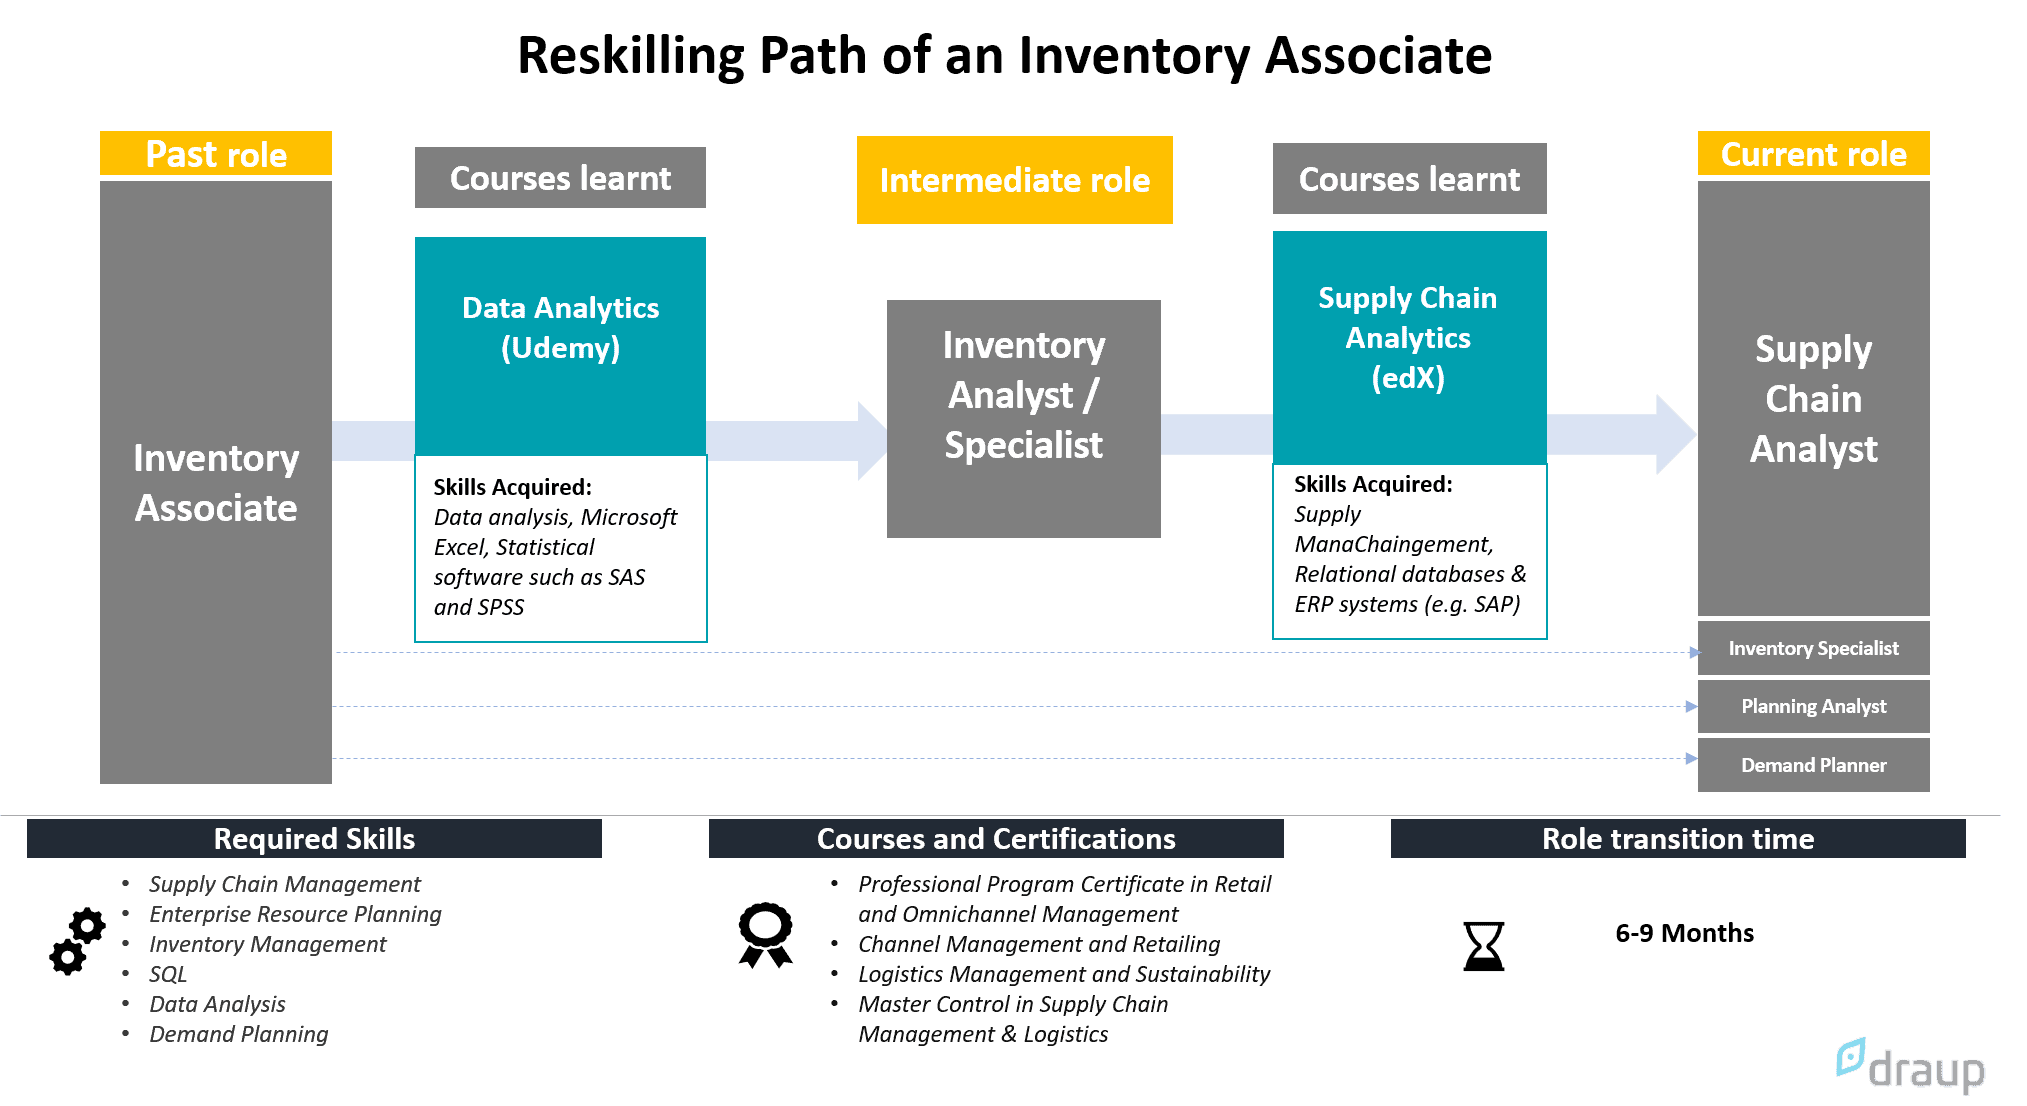 reskilling path of an inventory associate